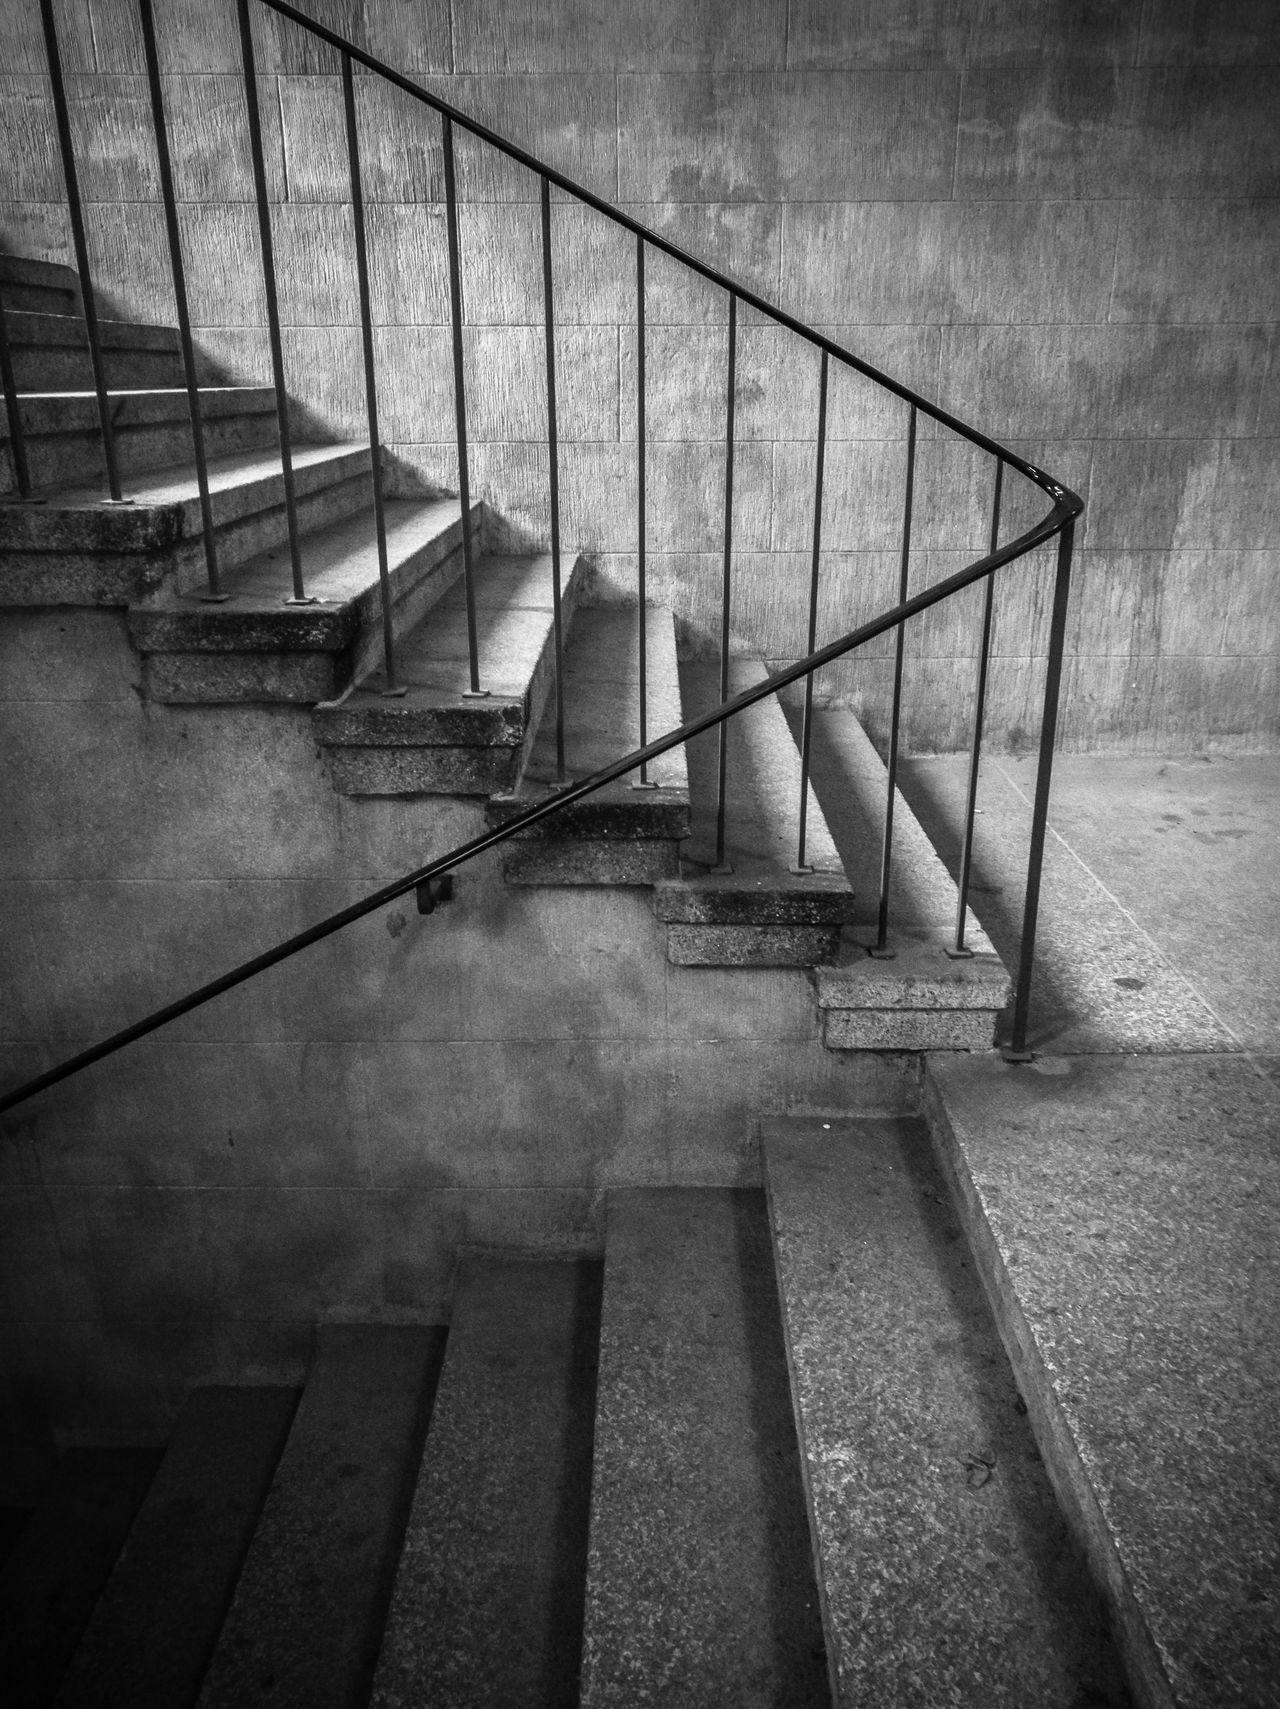 Staircase Steps Architecture Outdoors HuaweiP9 Www.tomaszkucharski.com.pl Blackandwhite Polishphotographer No People Old Buildings Berlin Siegessäule  Built Structure Tiergarten